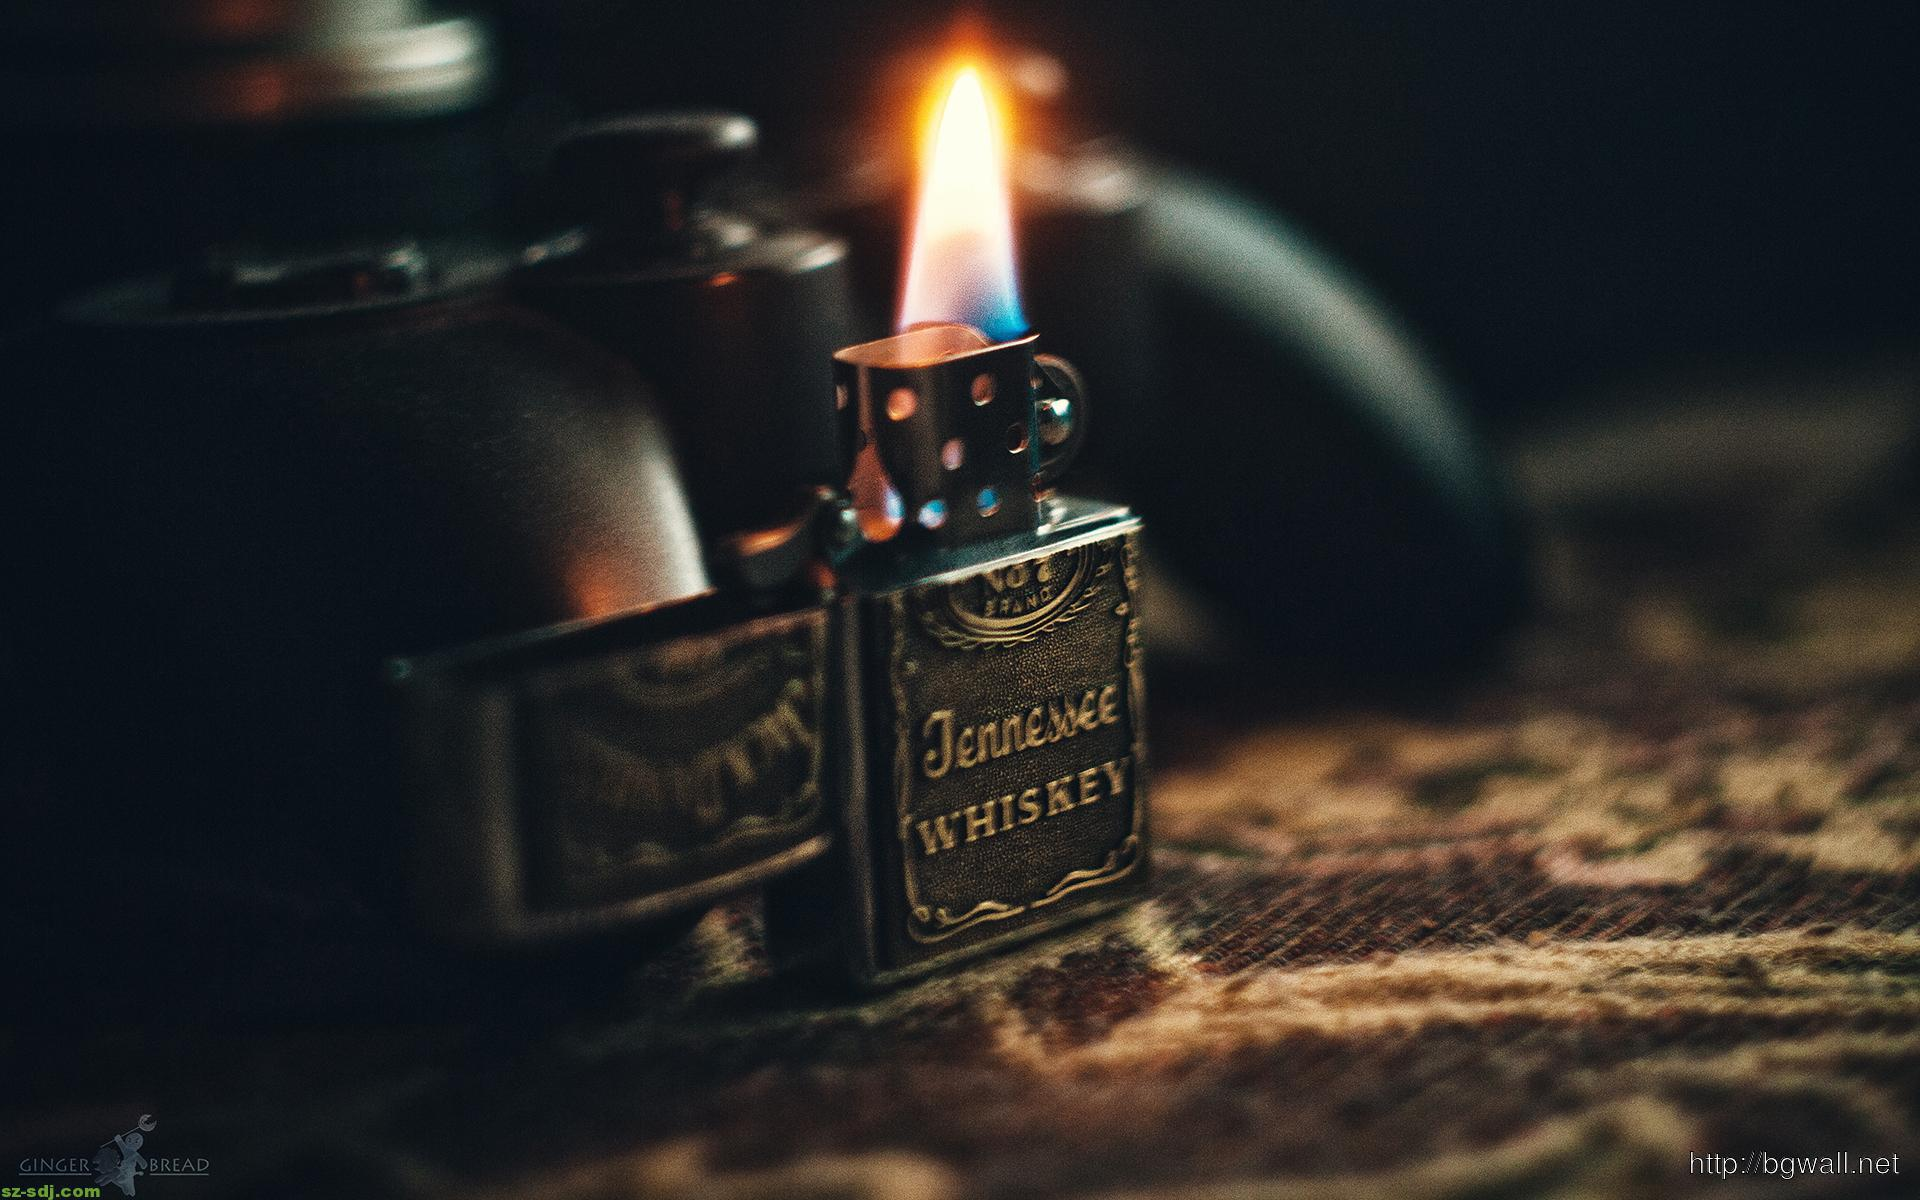 Classic Zippo Lighter Wallpaper Widescreen Desktop